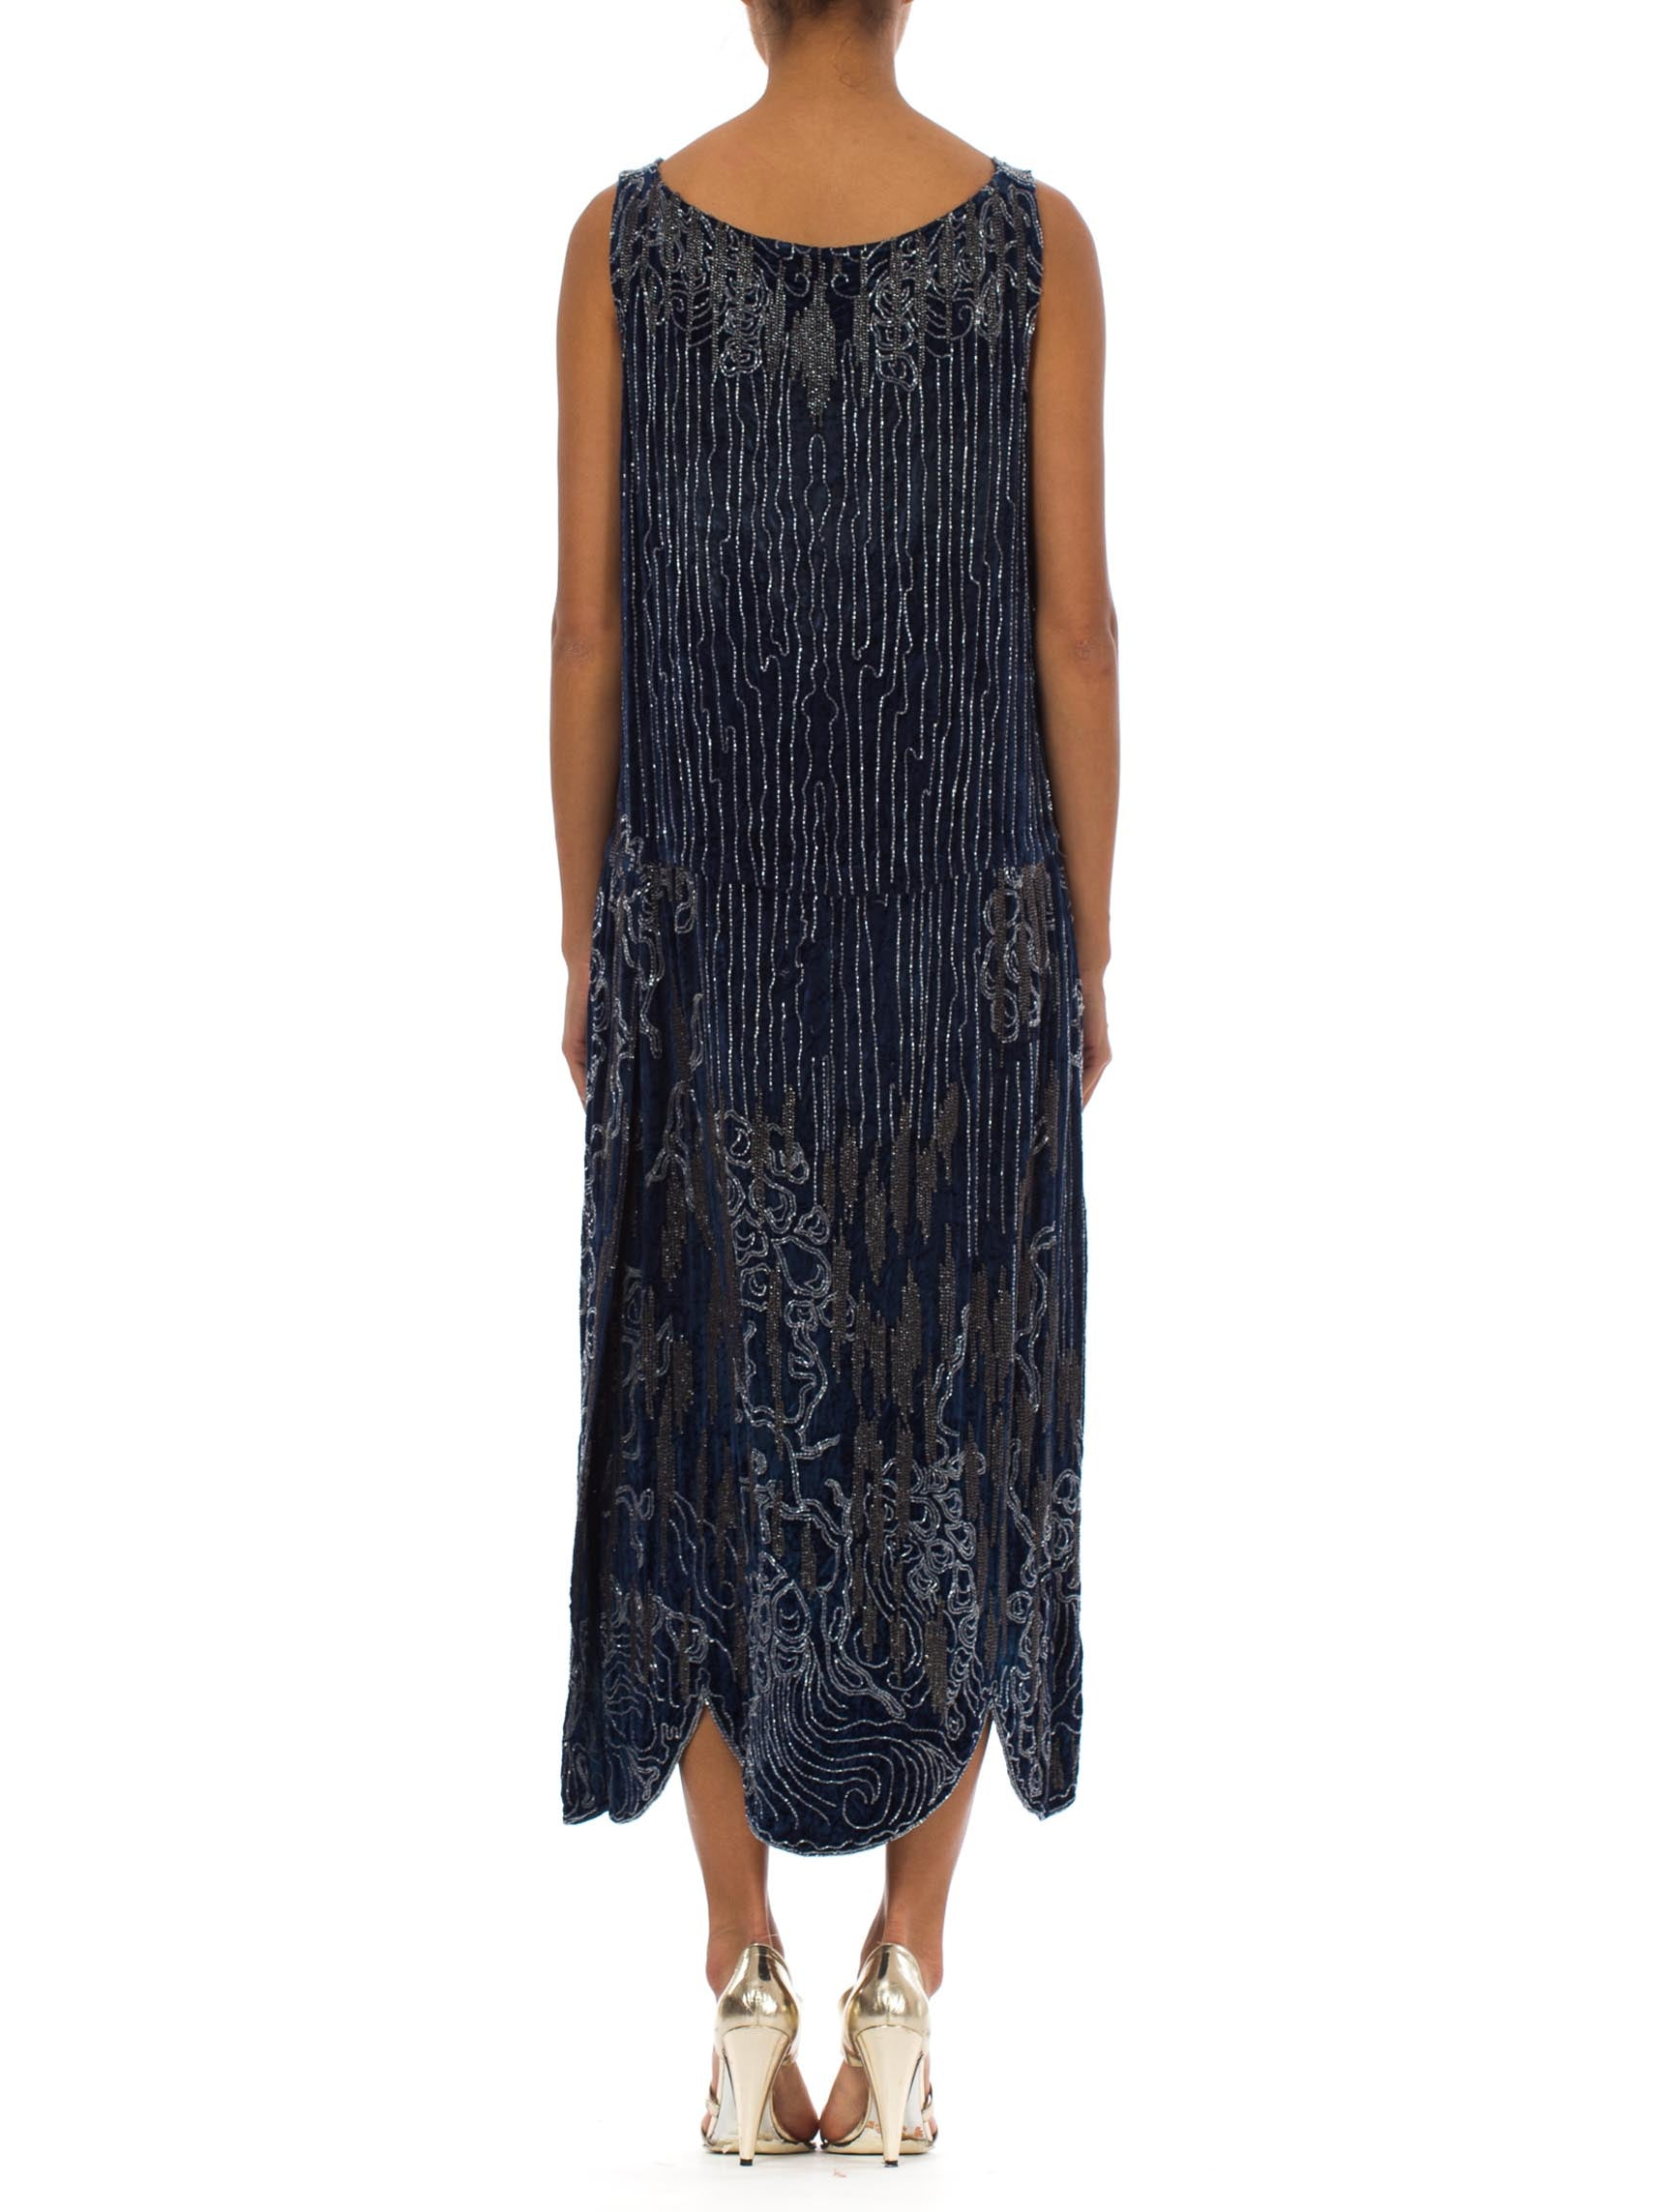 1920S Sapphire Blue  Silk Velvet Abstract Deco Beaded Cocktail Dress With Side Slit